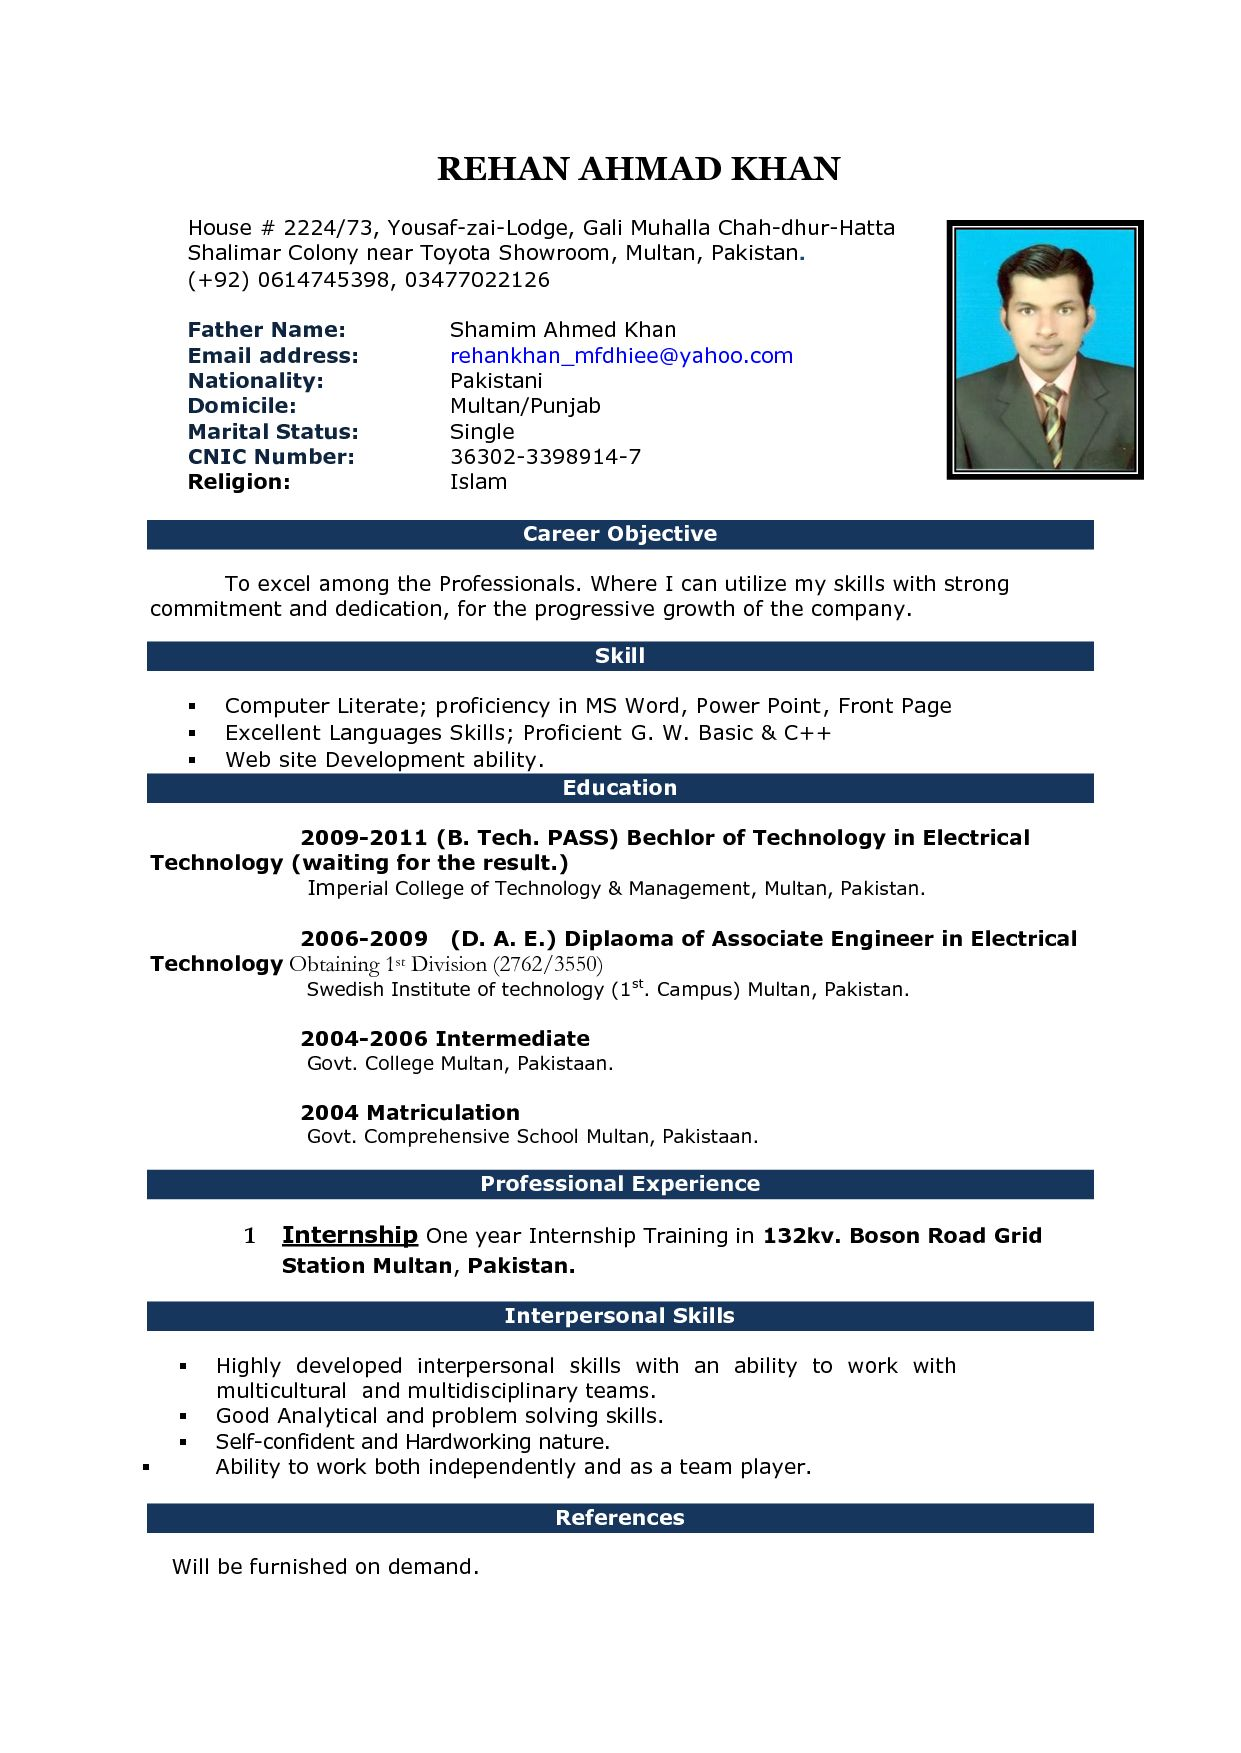 fresher resume format download in ms word b.com